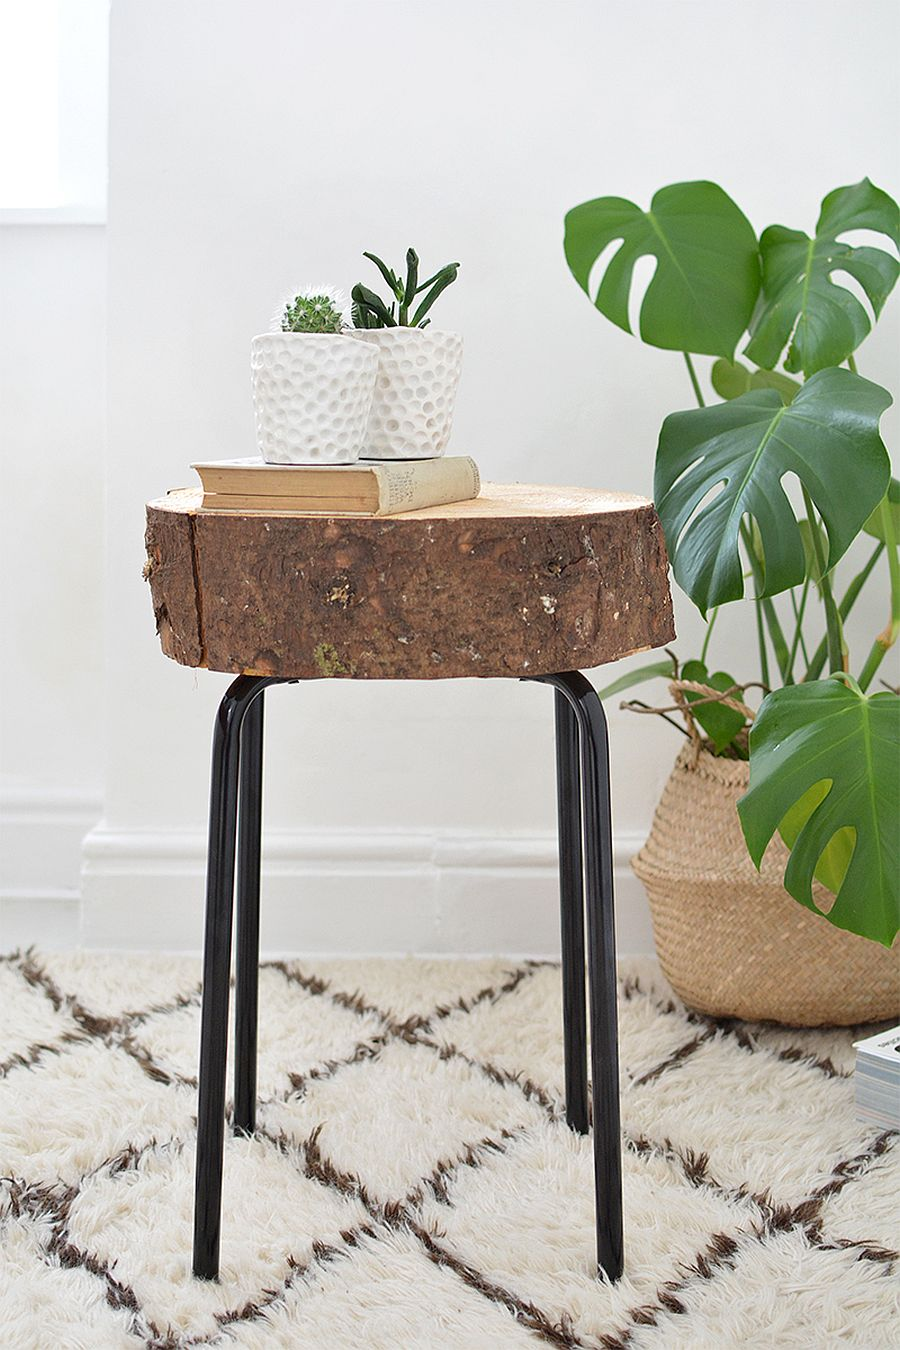 diy tree stump decor ideas that usher budget wood slice stool and side table has simple elegant design accent view gallery coral home accessories furniture blankets wine rack teak